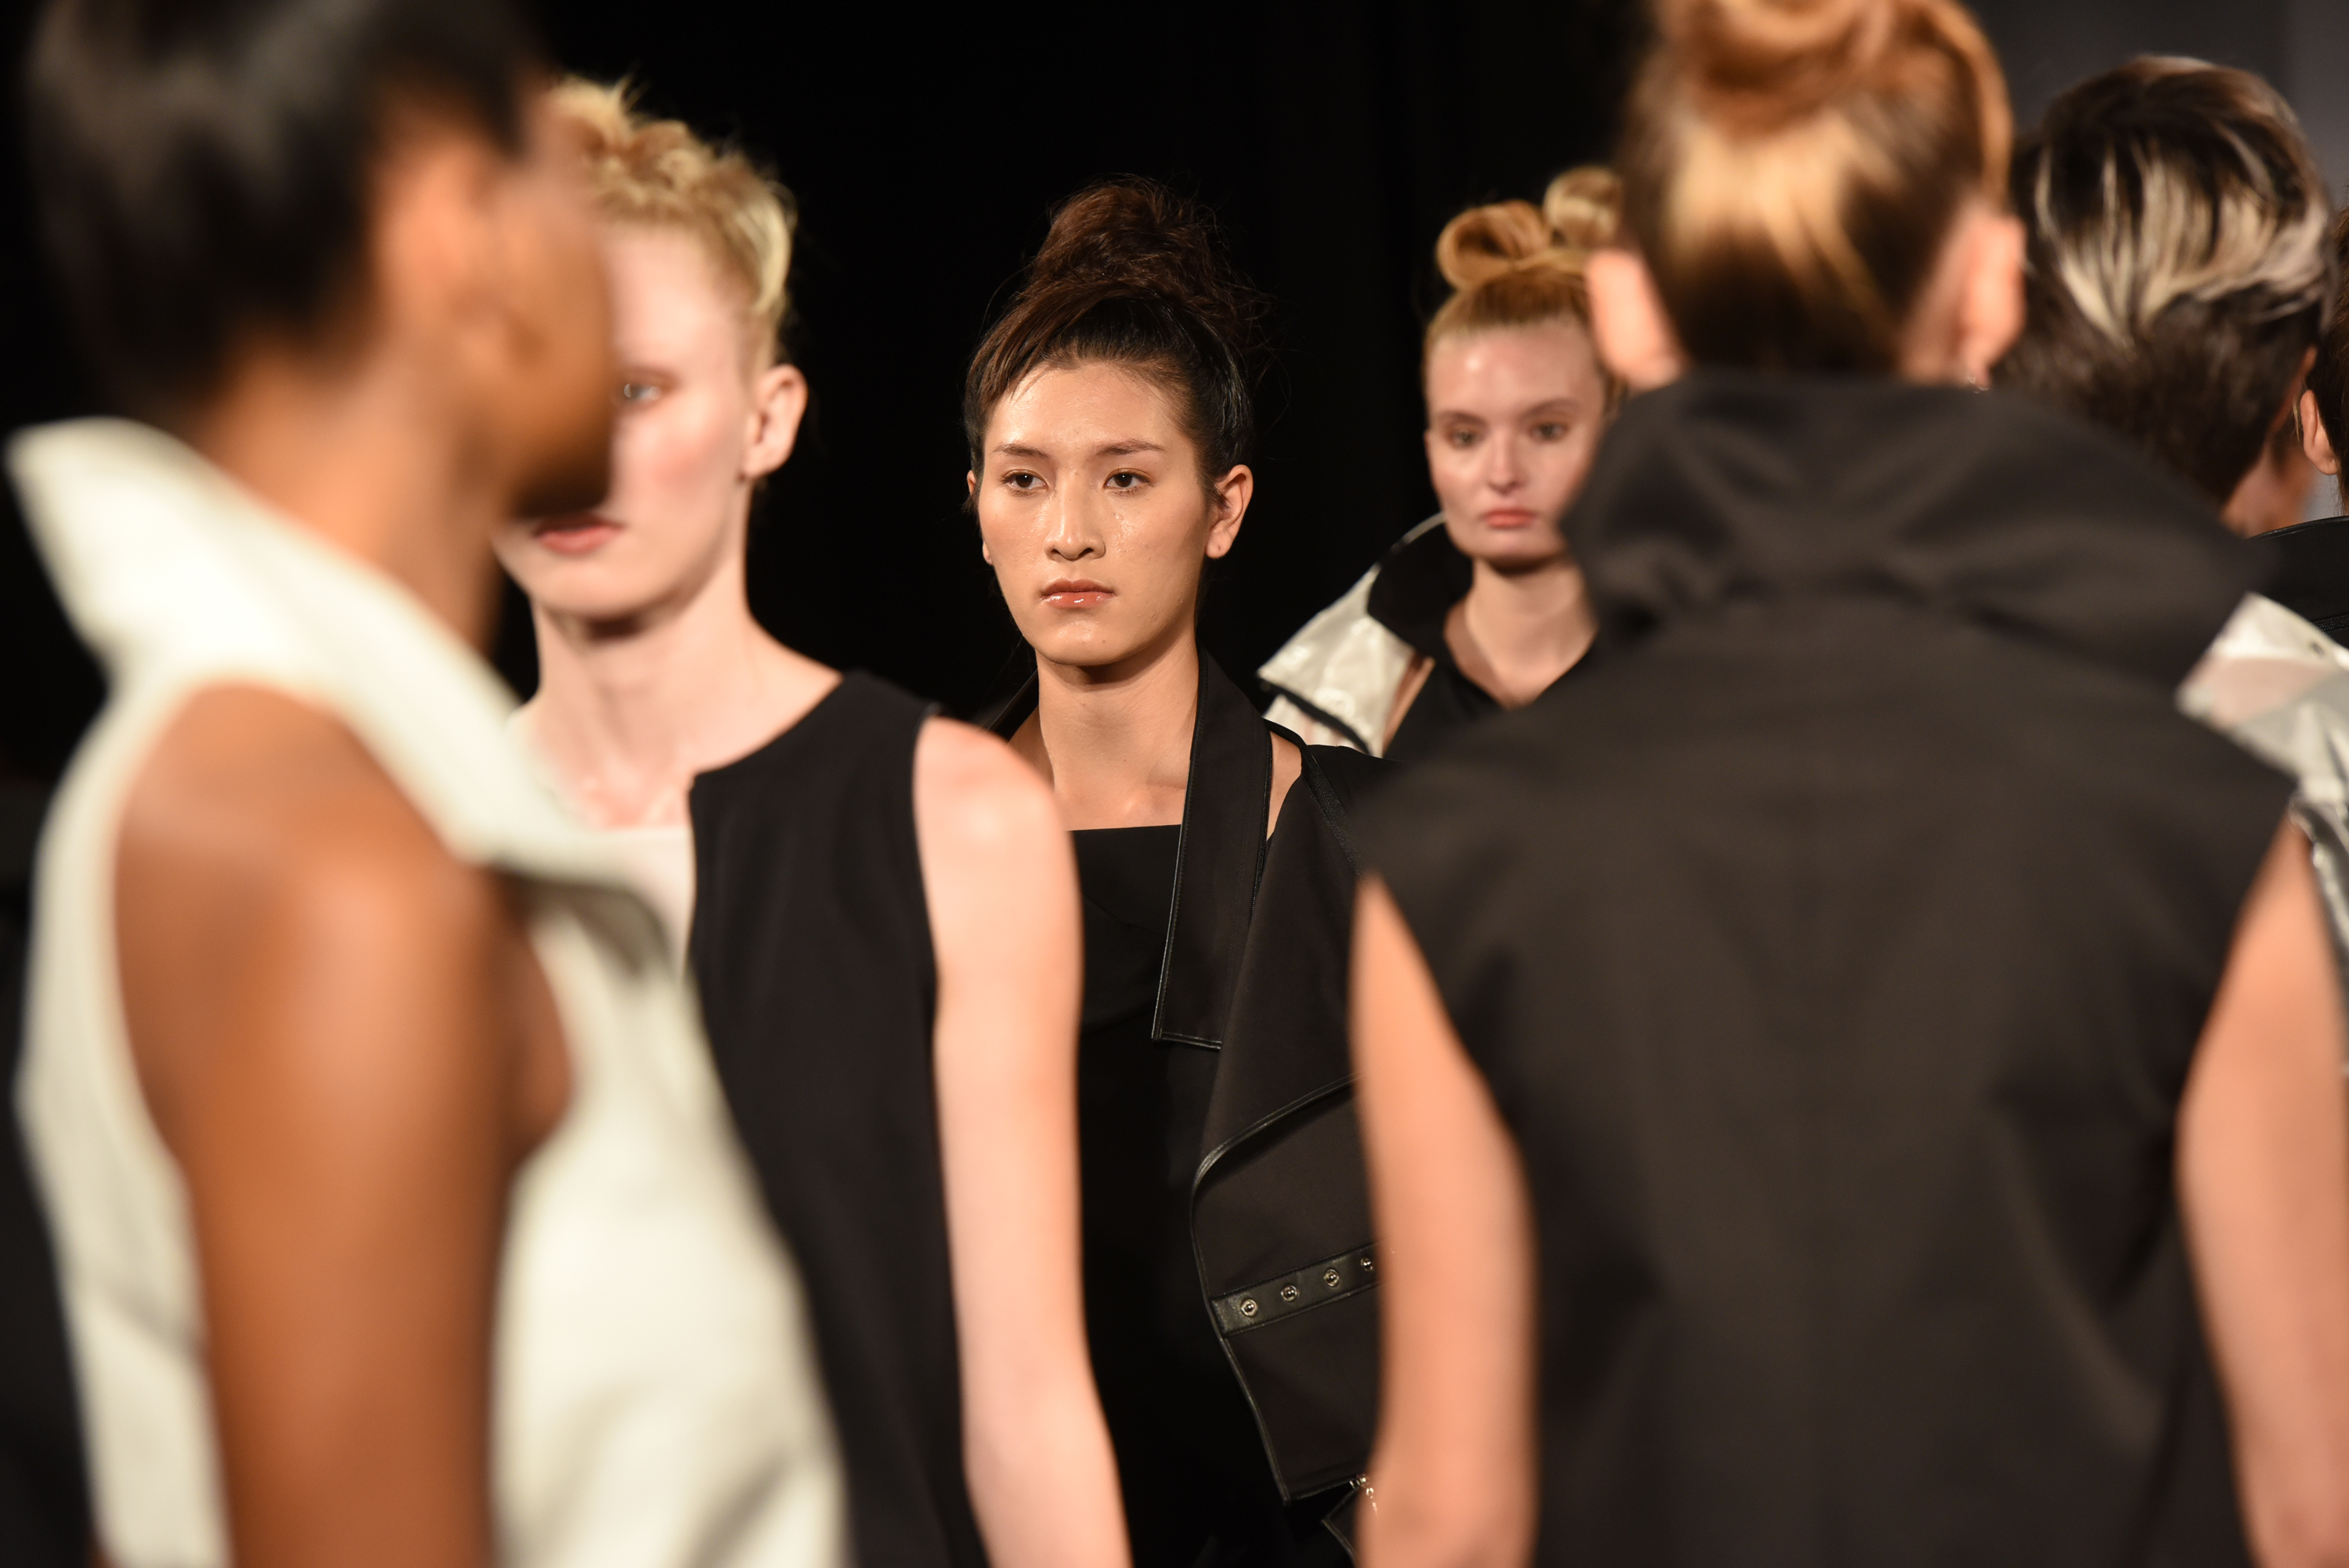 Polish American Foundation - Runway - Spring 2016 New York Fashion Week